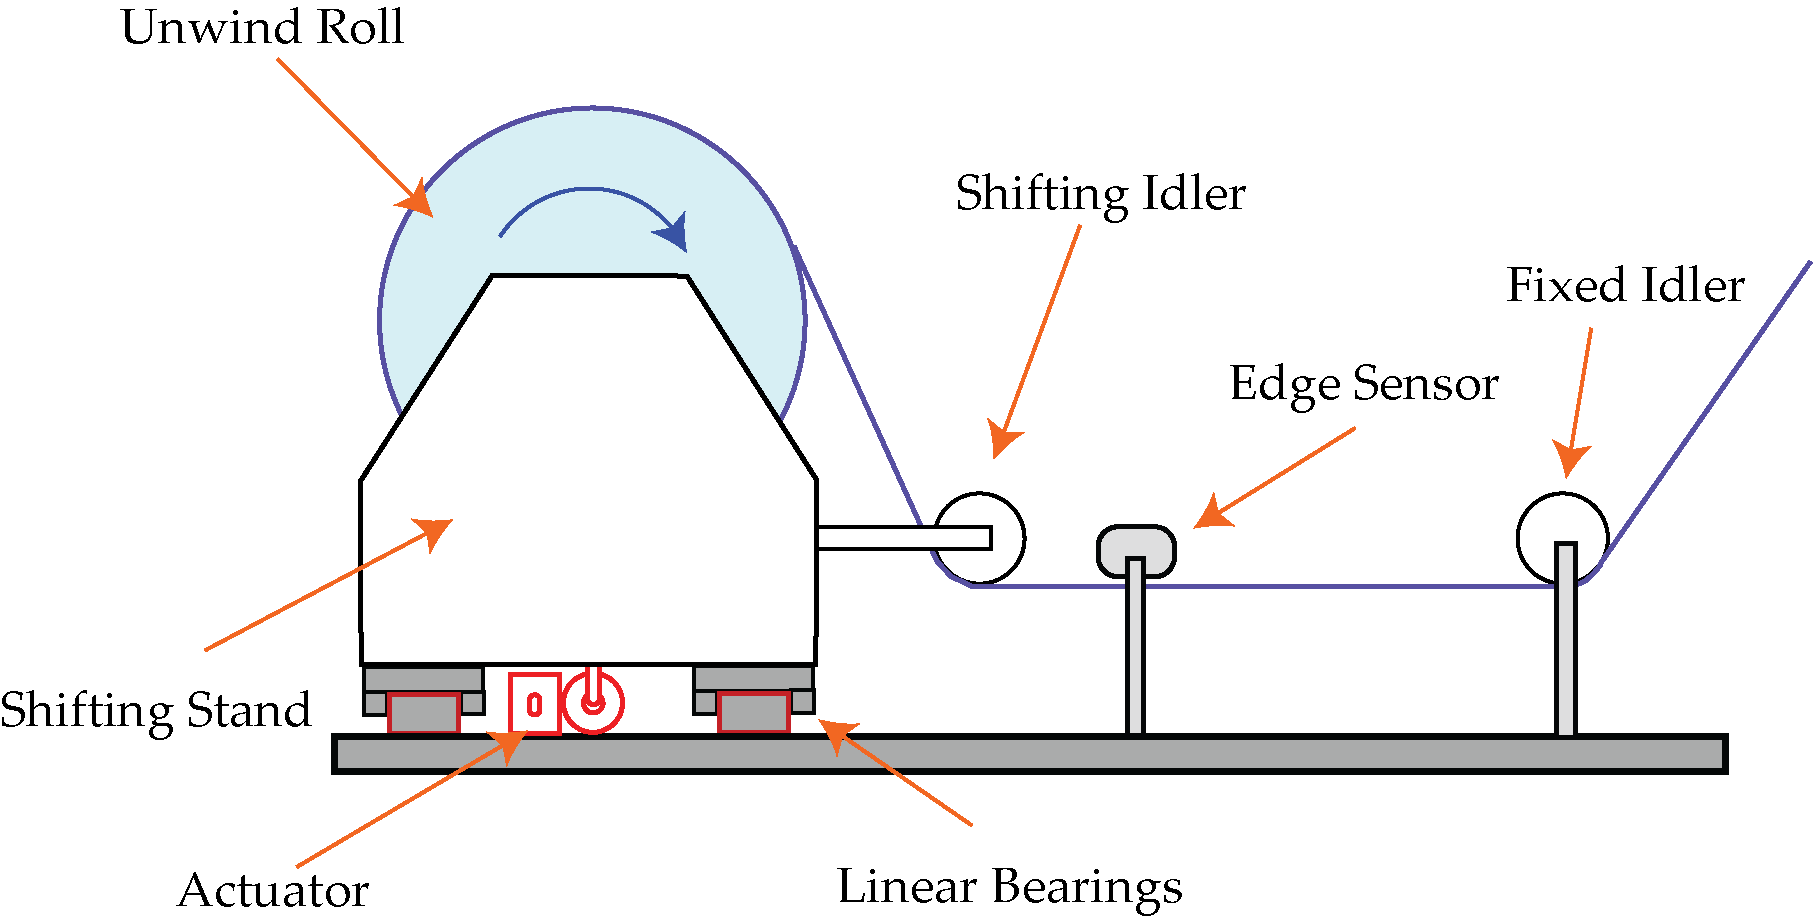 Unwind guiding system with a fixed sensor and a moving idler